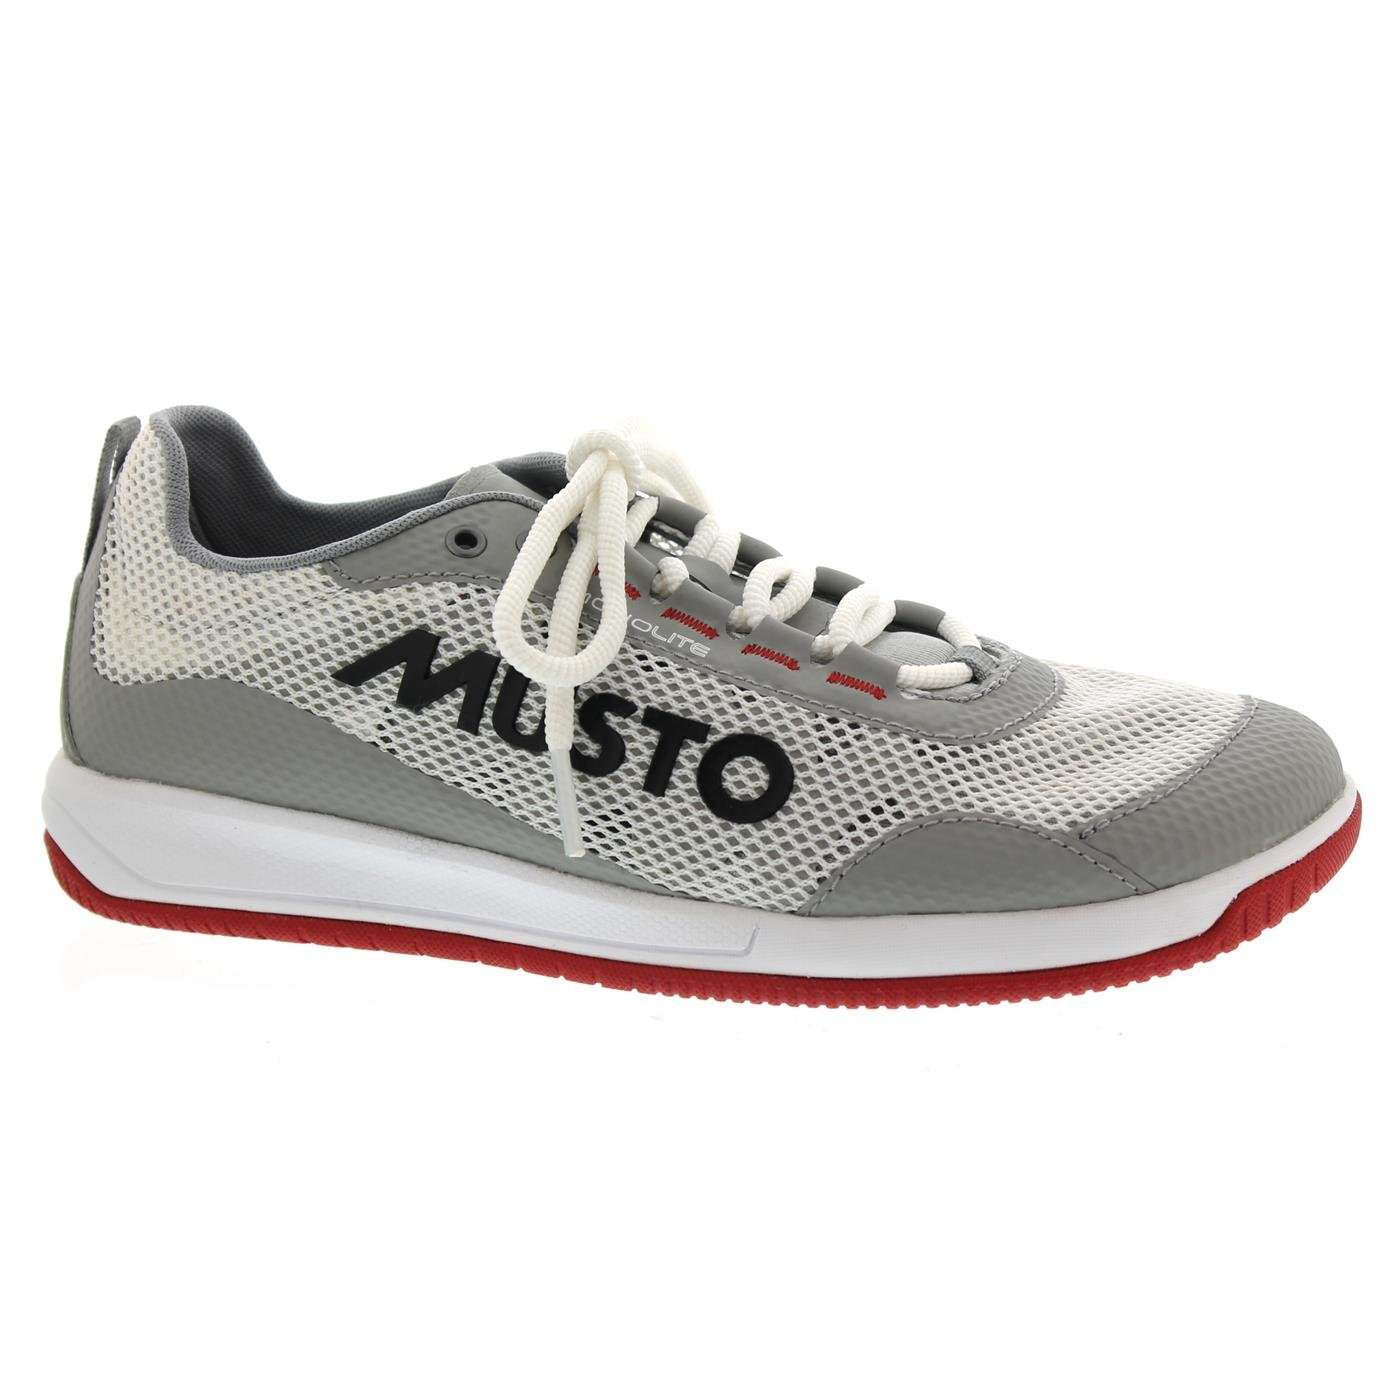 Musto Dynamic Pro Lite Non-Marking, Deck-Gripping, and Lightweight Performance Sailng Shoe Platinum 10.5